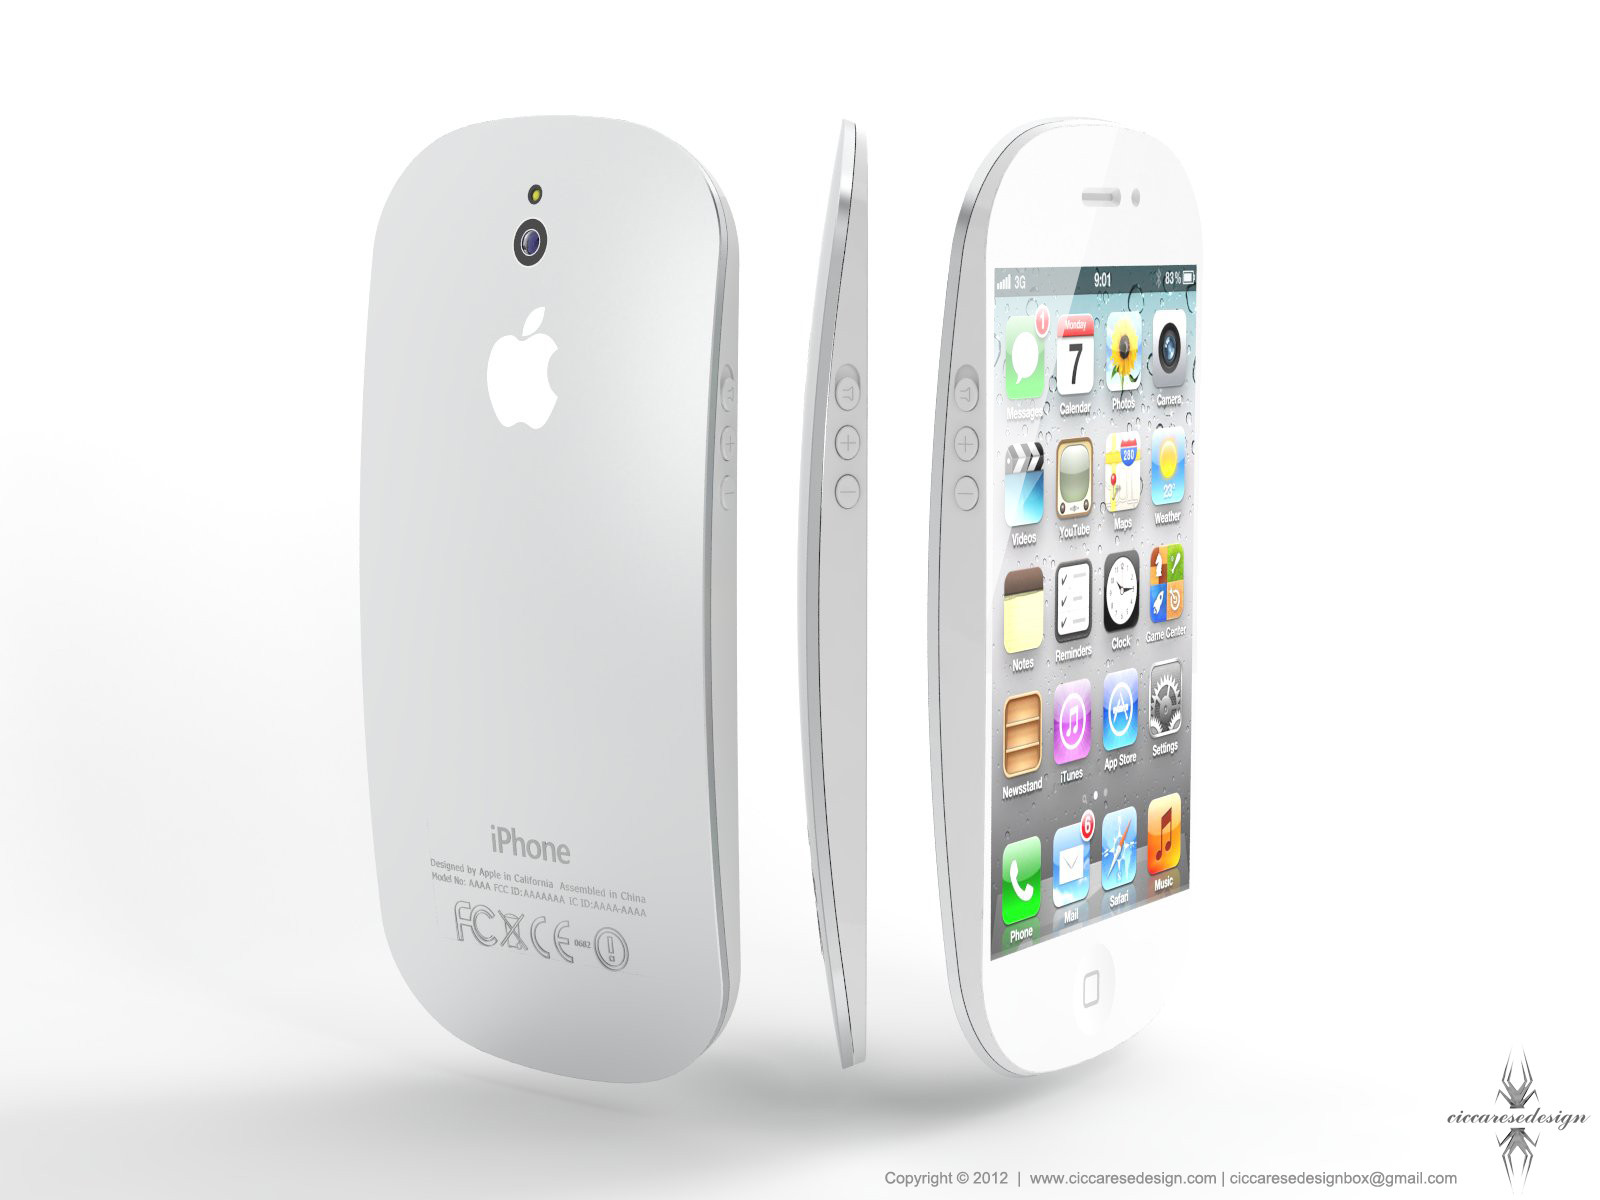 1330167472_iphone-5-concept-by-ciccarese-design-1.jpg